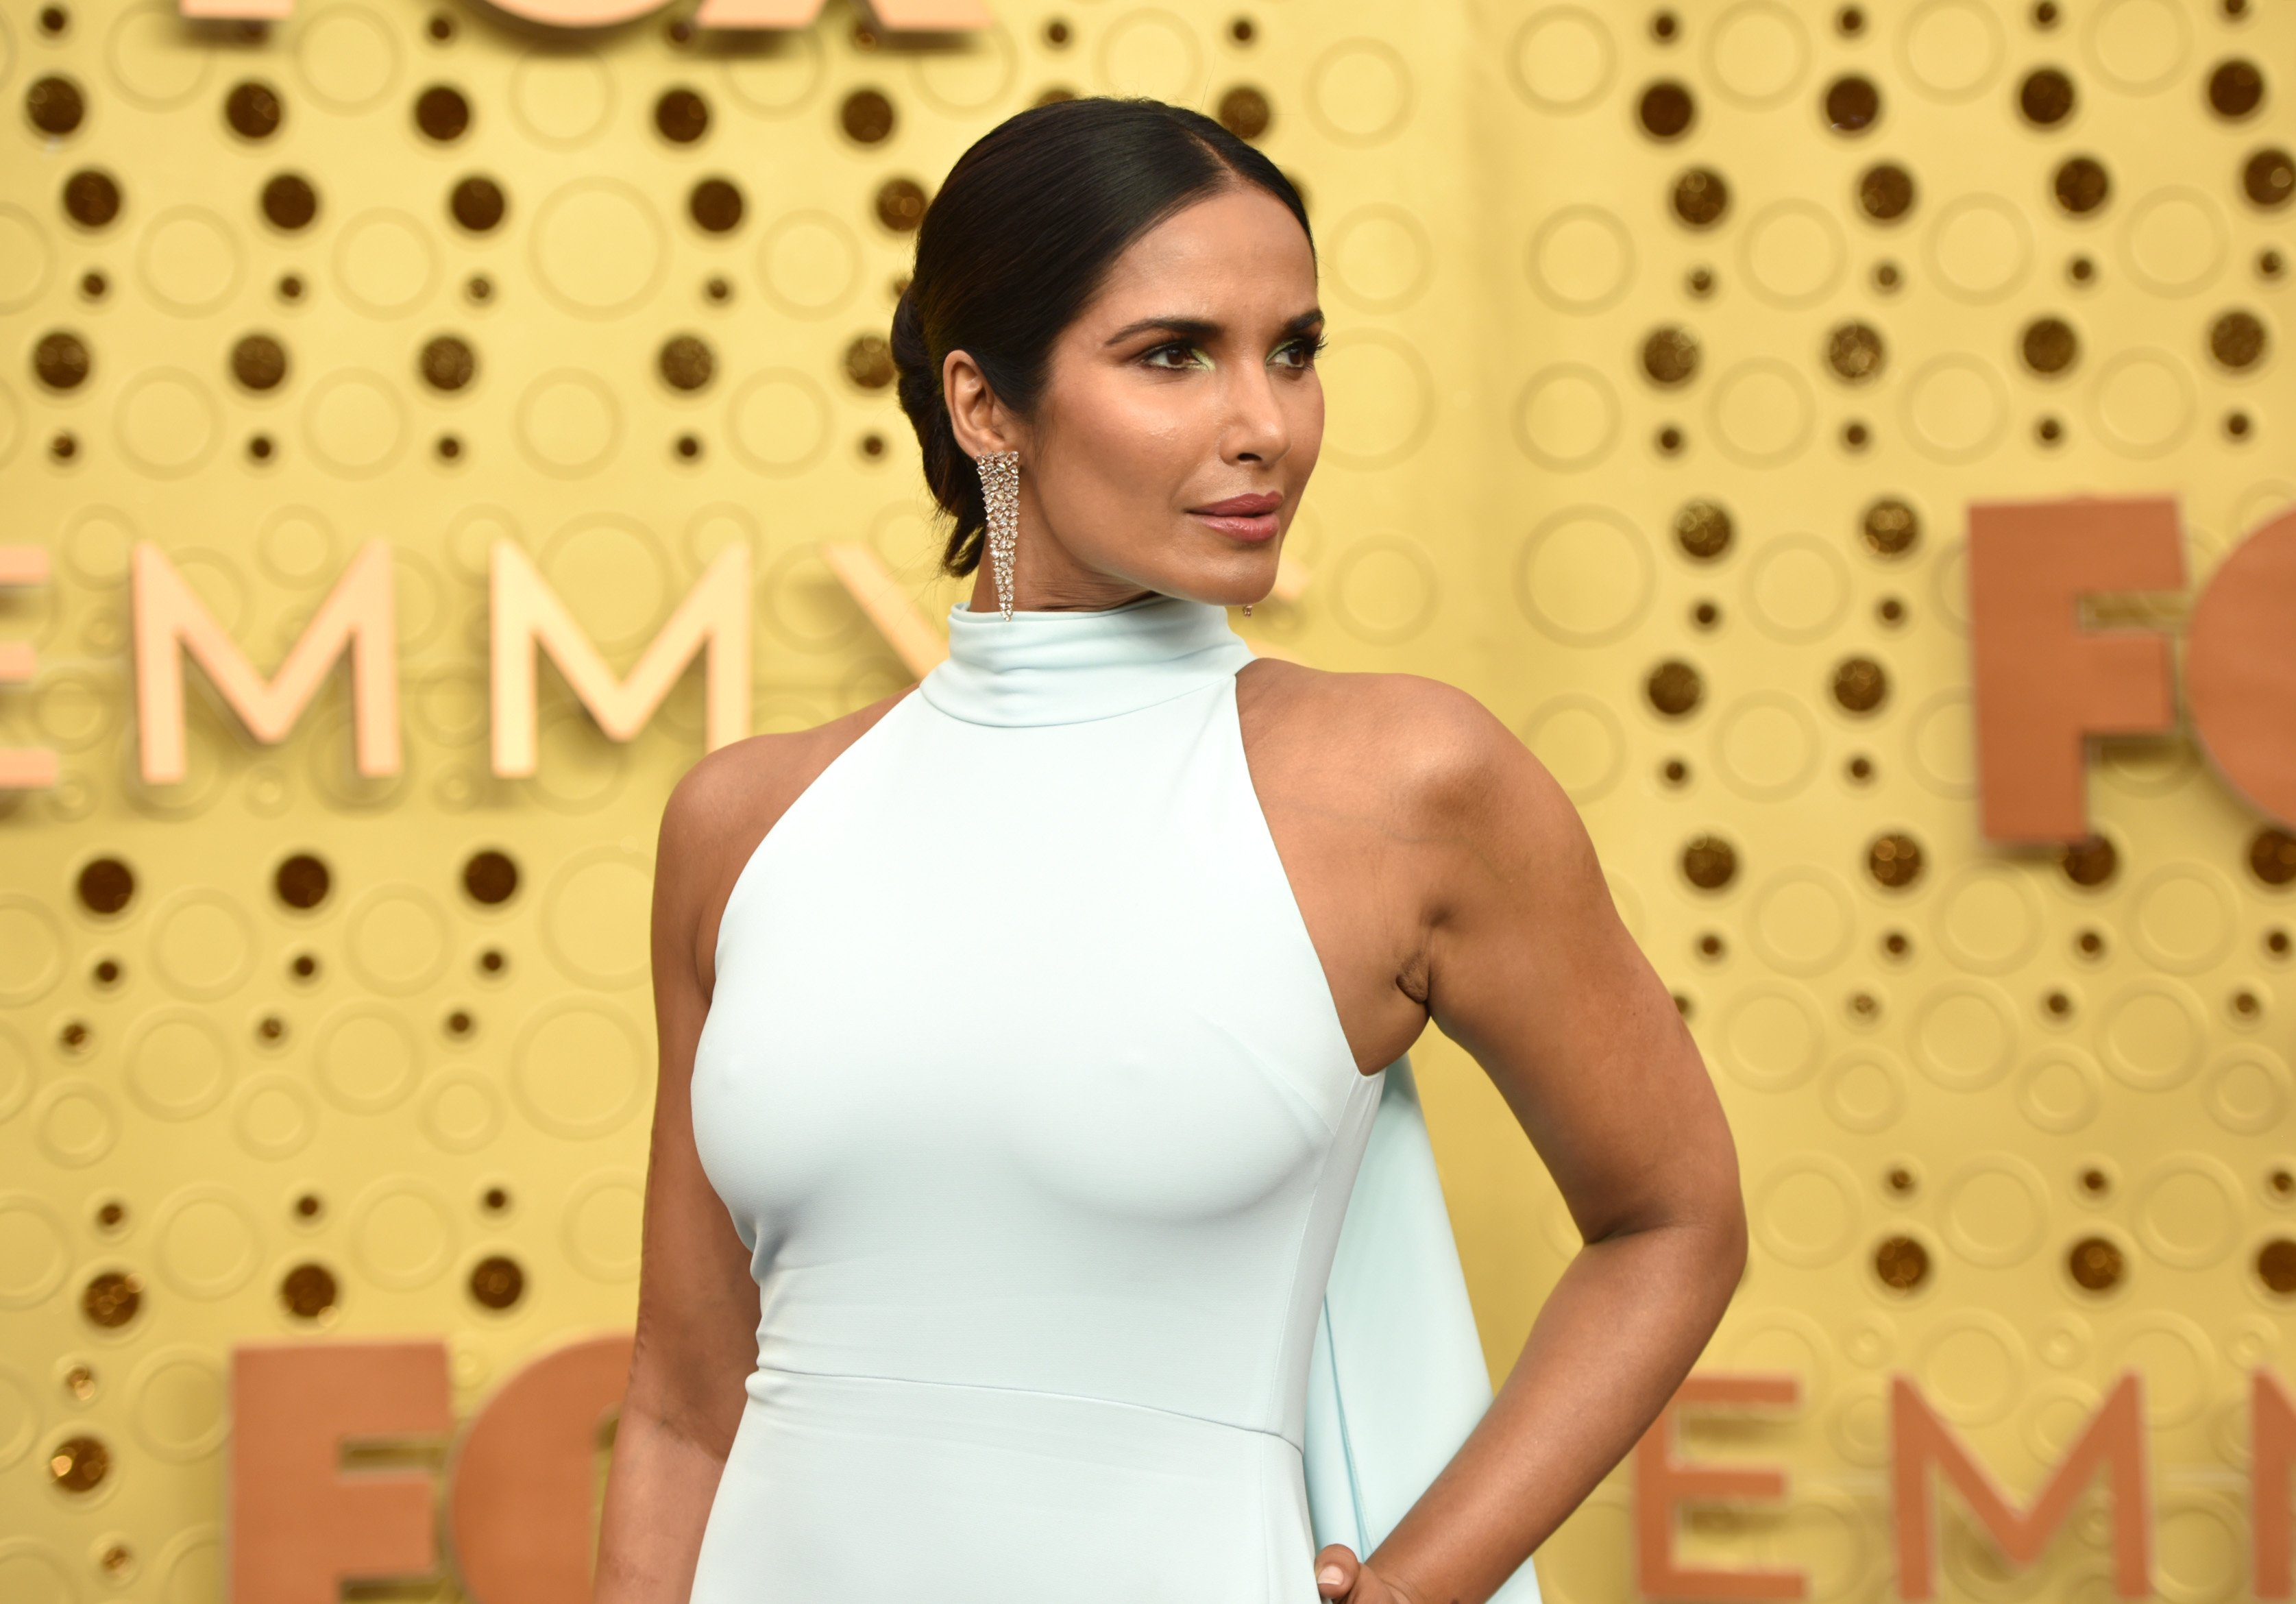 Padma Lakshmi attends the Emmy Awards in Los Angeles, California on September 22, 2019 | Photo: Getty Images